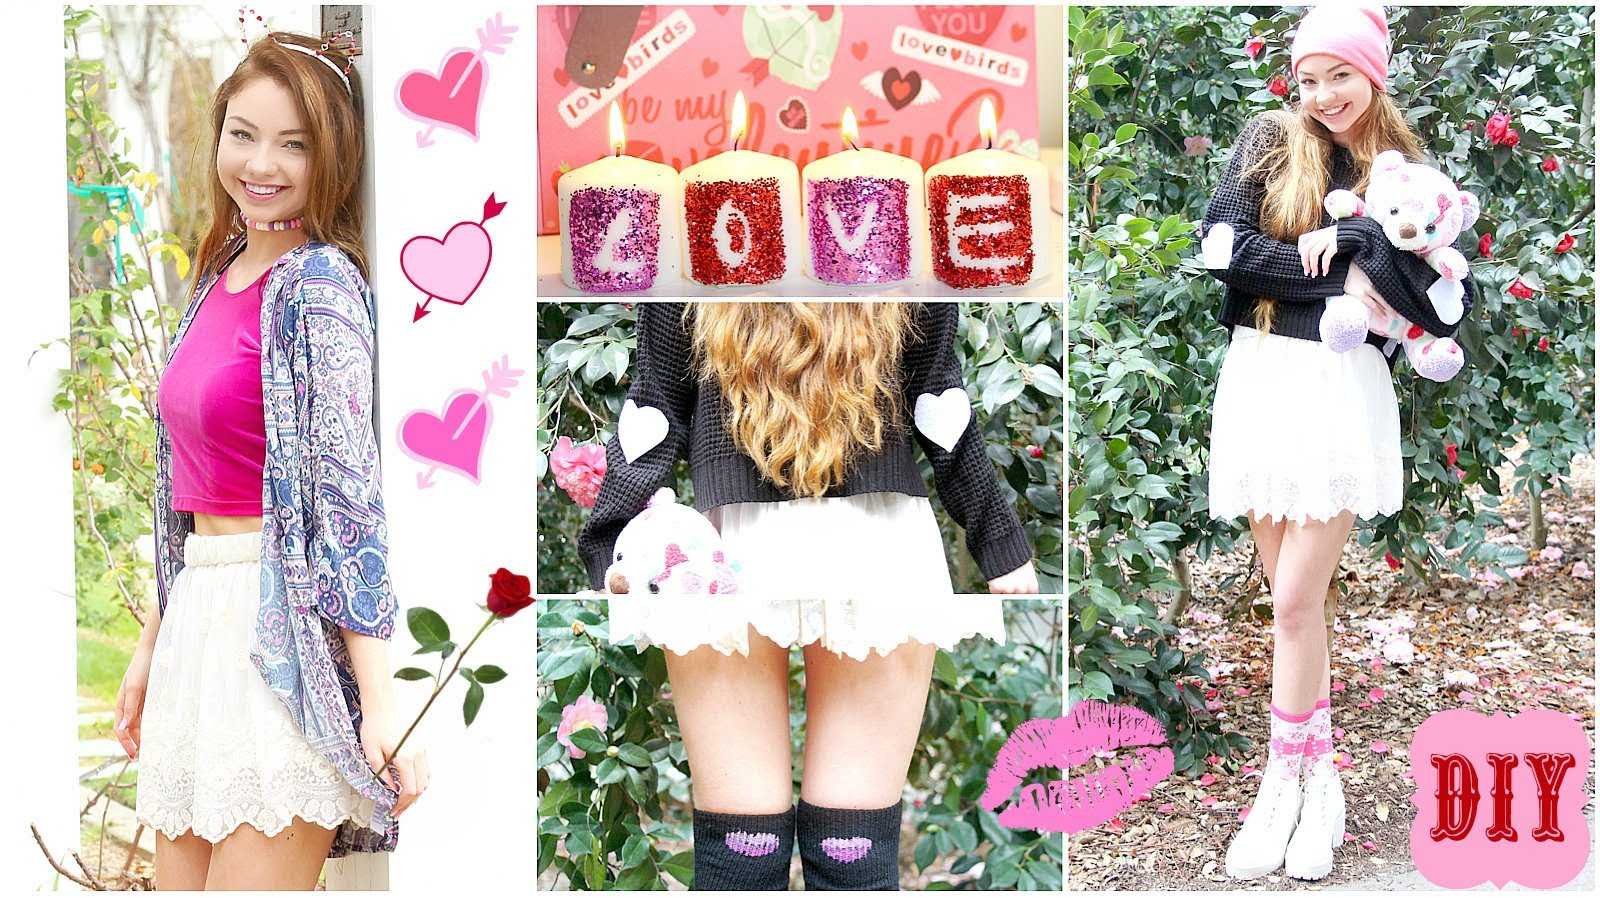 Diy Valentine's Working day: Hair Equipment, Outfits, Decor & much more!